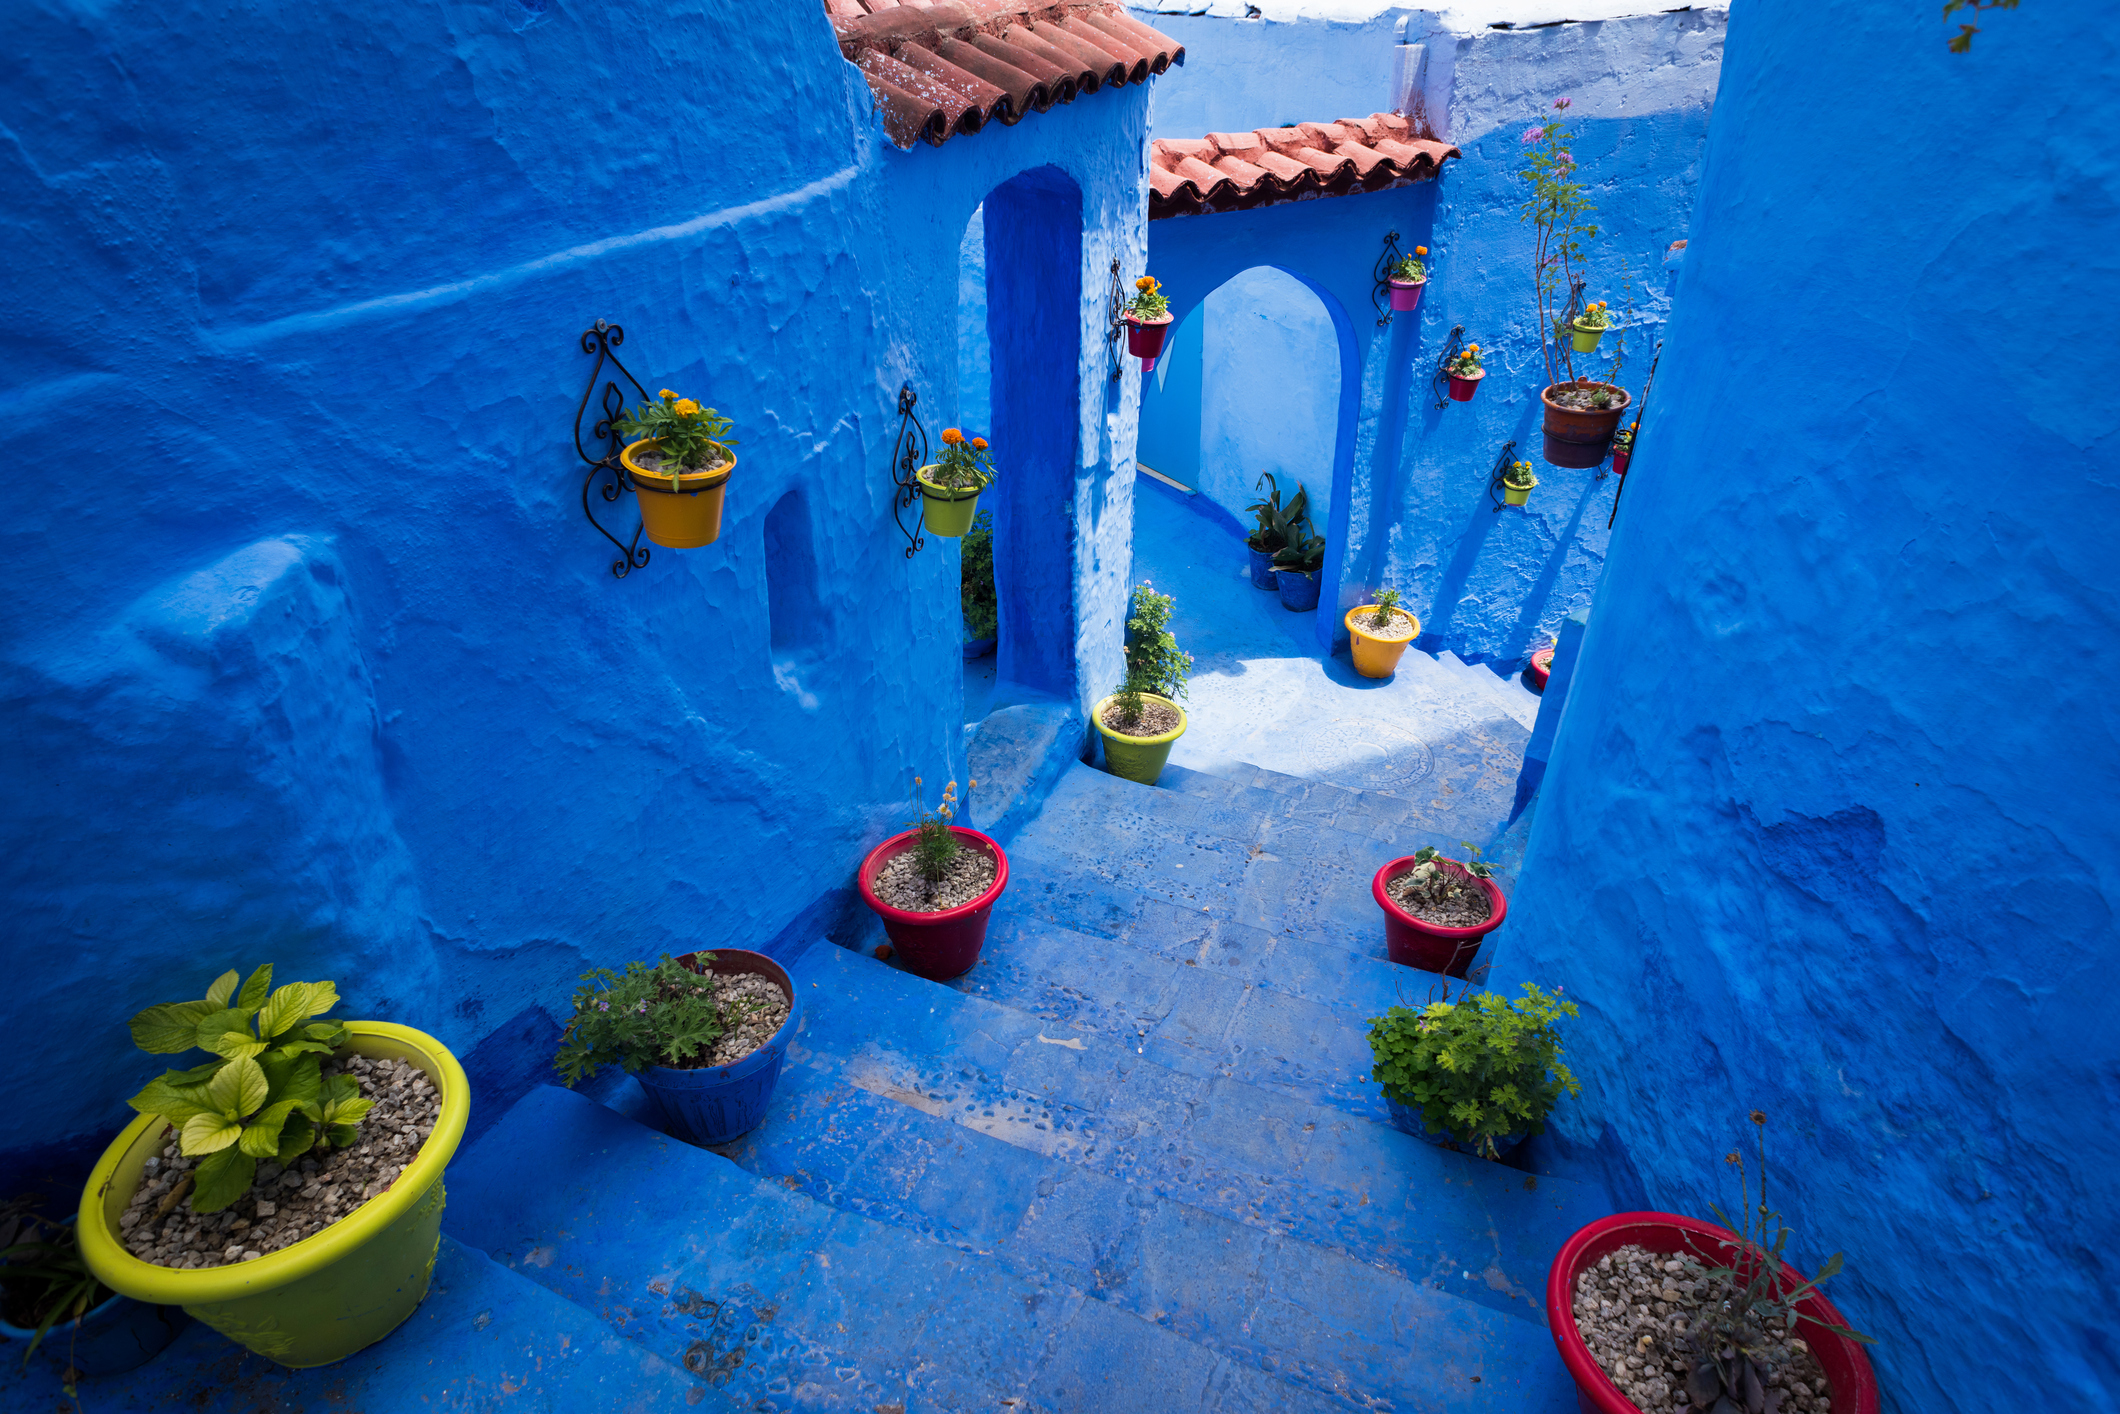 Colorful alleyway in the city of Chefchaouen, Morocco